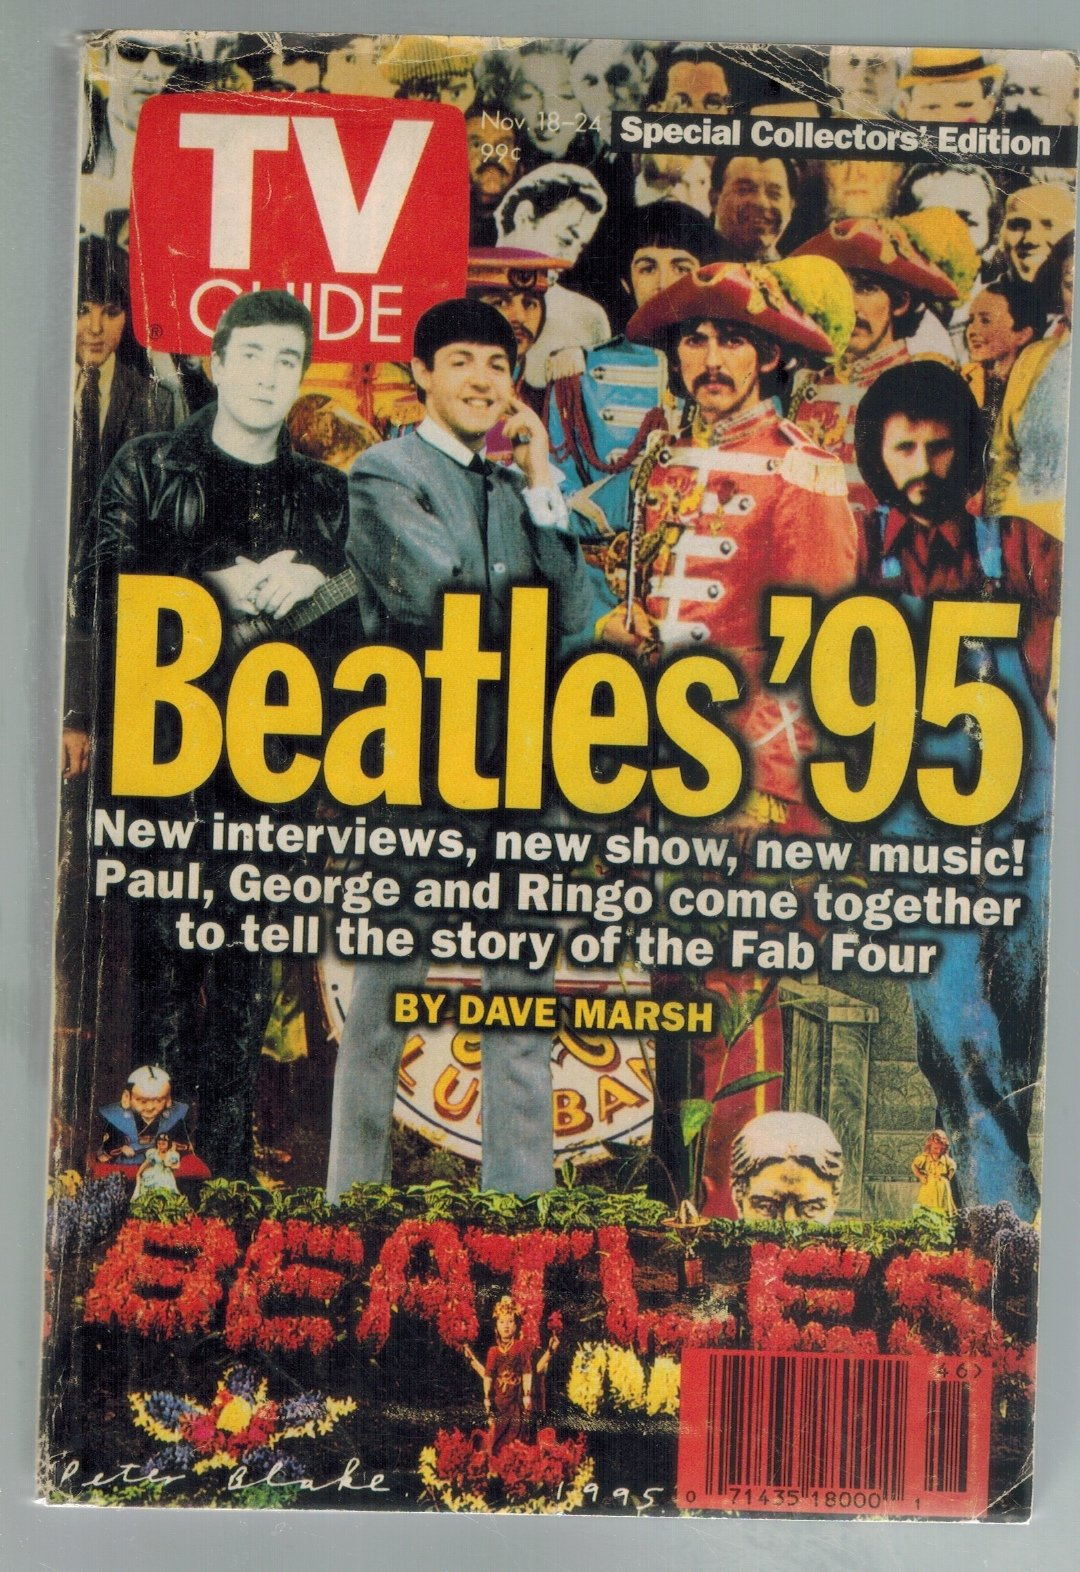 TV Guide Beatles 95  by Marsh, Dave and Tv Guide